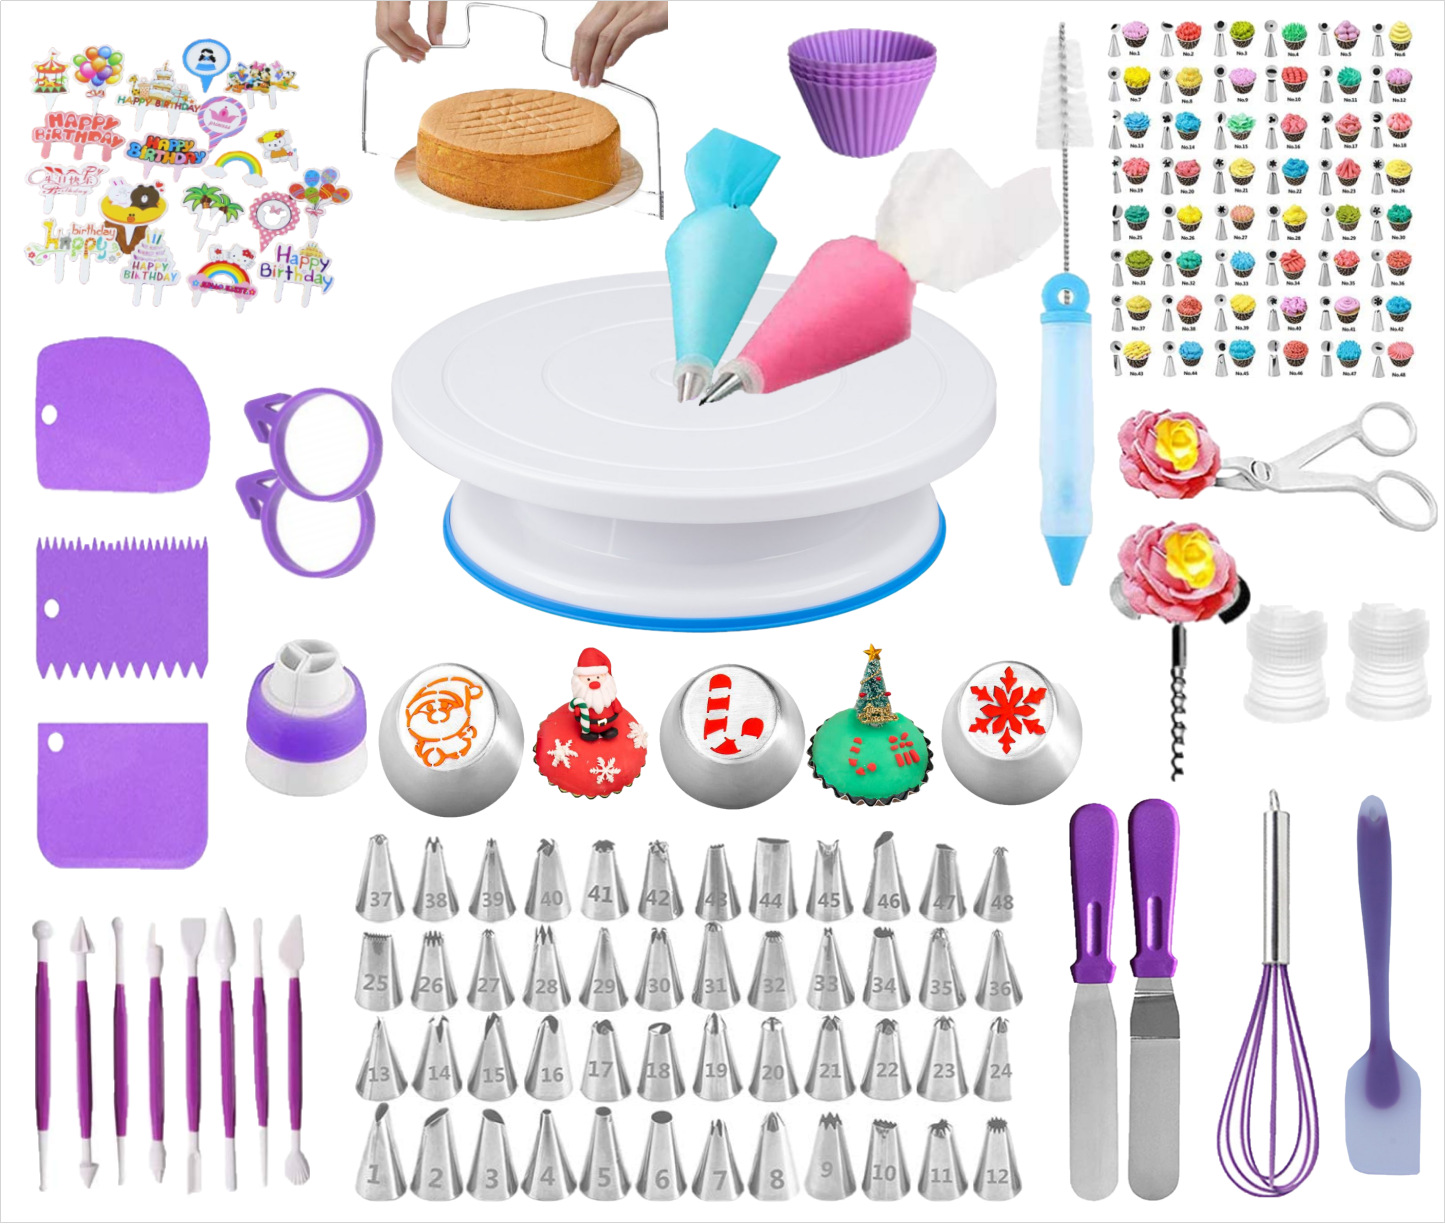 158Pcs/Set Cake Decorating Turntable Stand Icing Tips Piping Nozzles Baking Tools for Beginners Photo Color